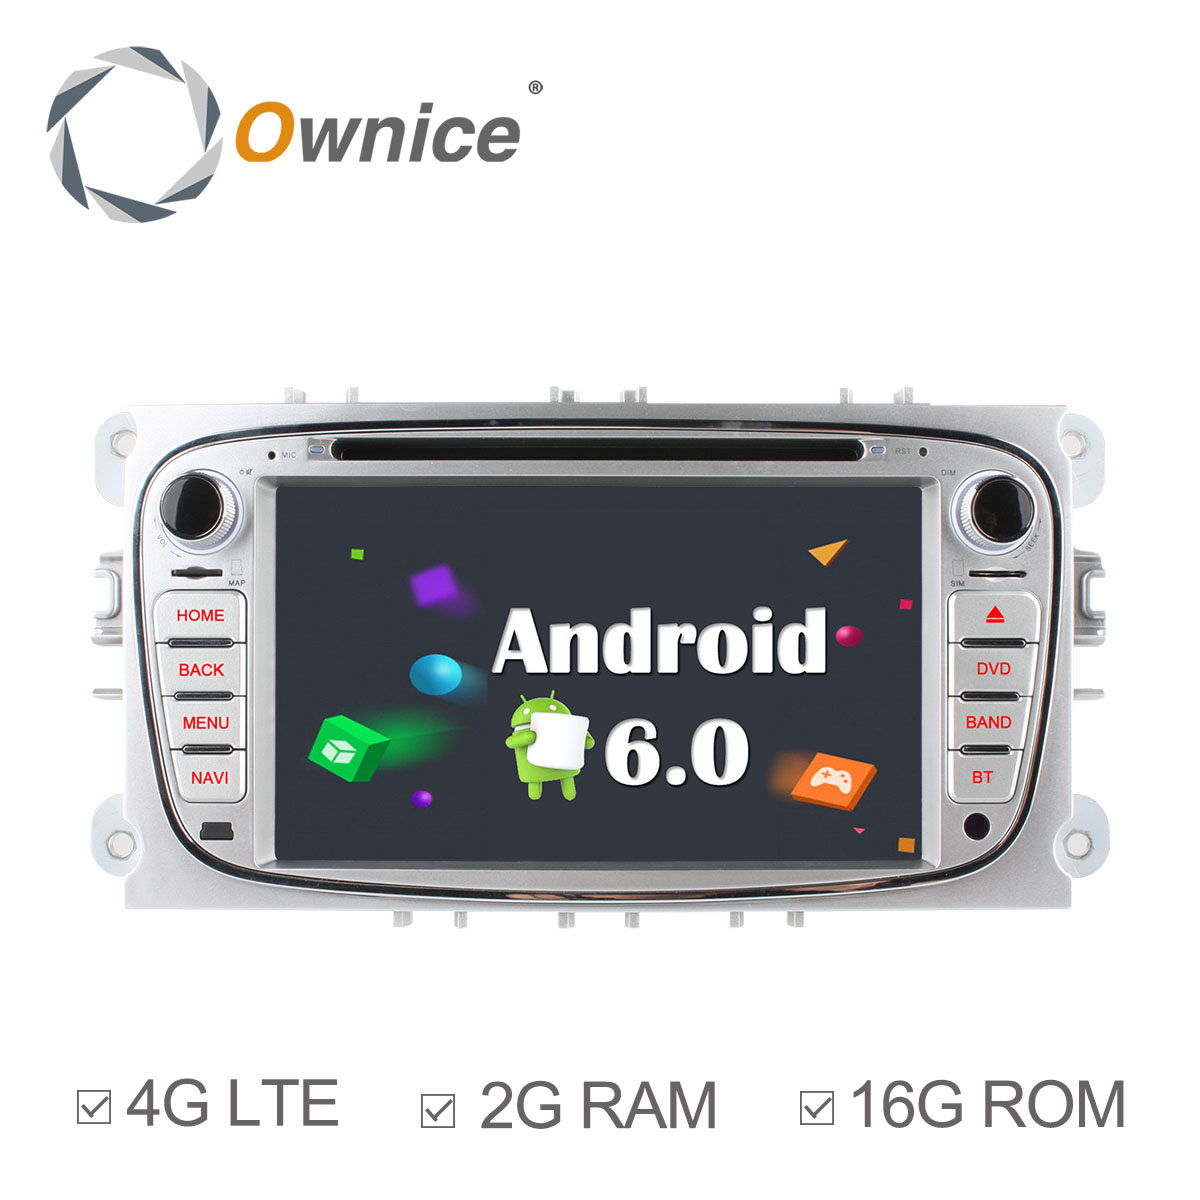 Ownice C500 4 Core Android 6.0 2G RAM Car DVD GPS For Ford Mondeo Focus 2 S-max 2007-2013 radio Support 4G LTE Network DAB+ TPMS